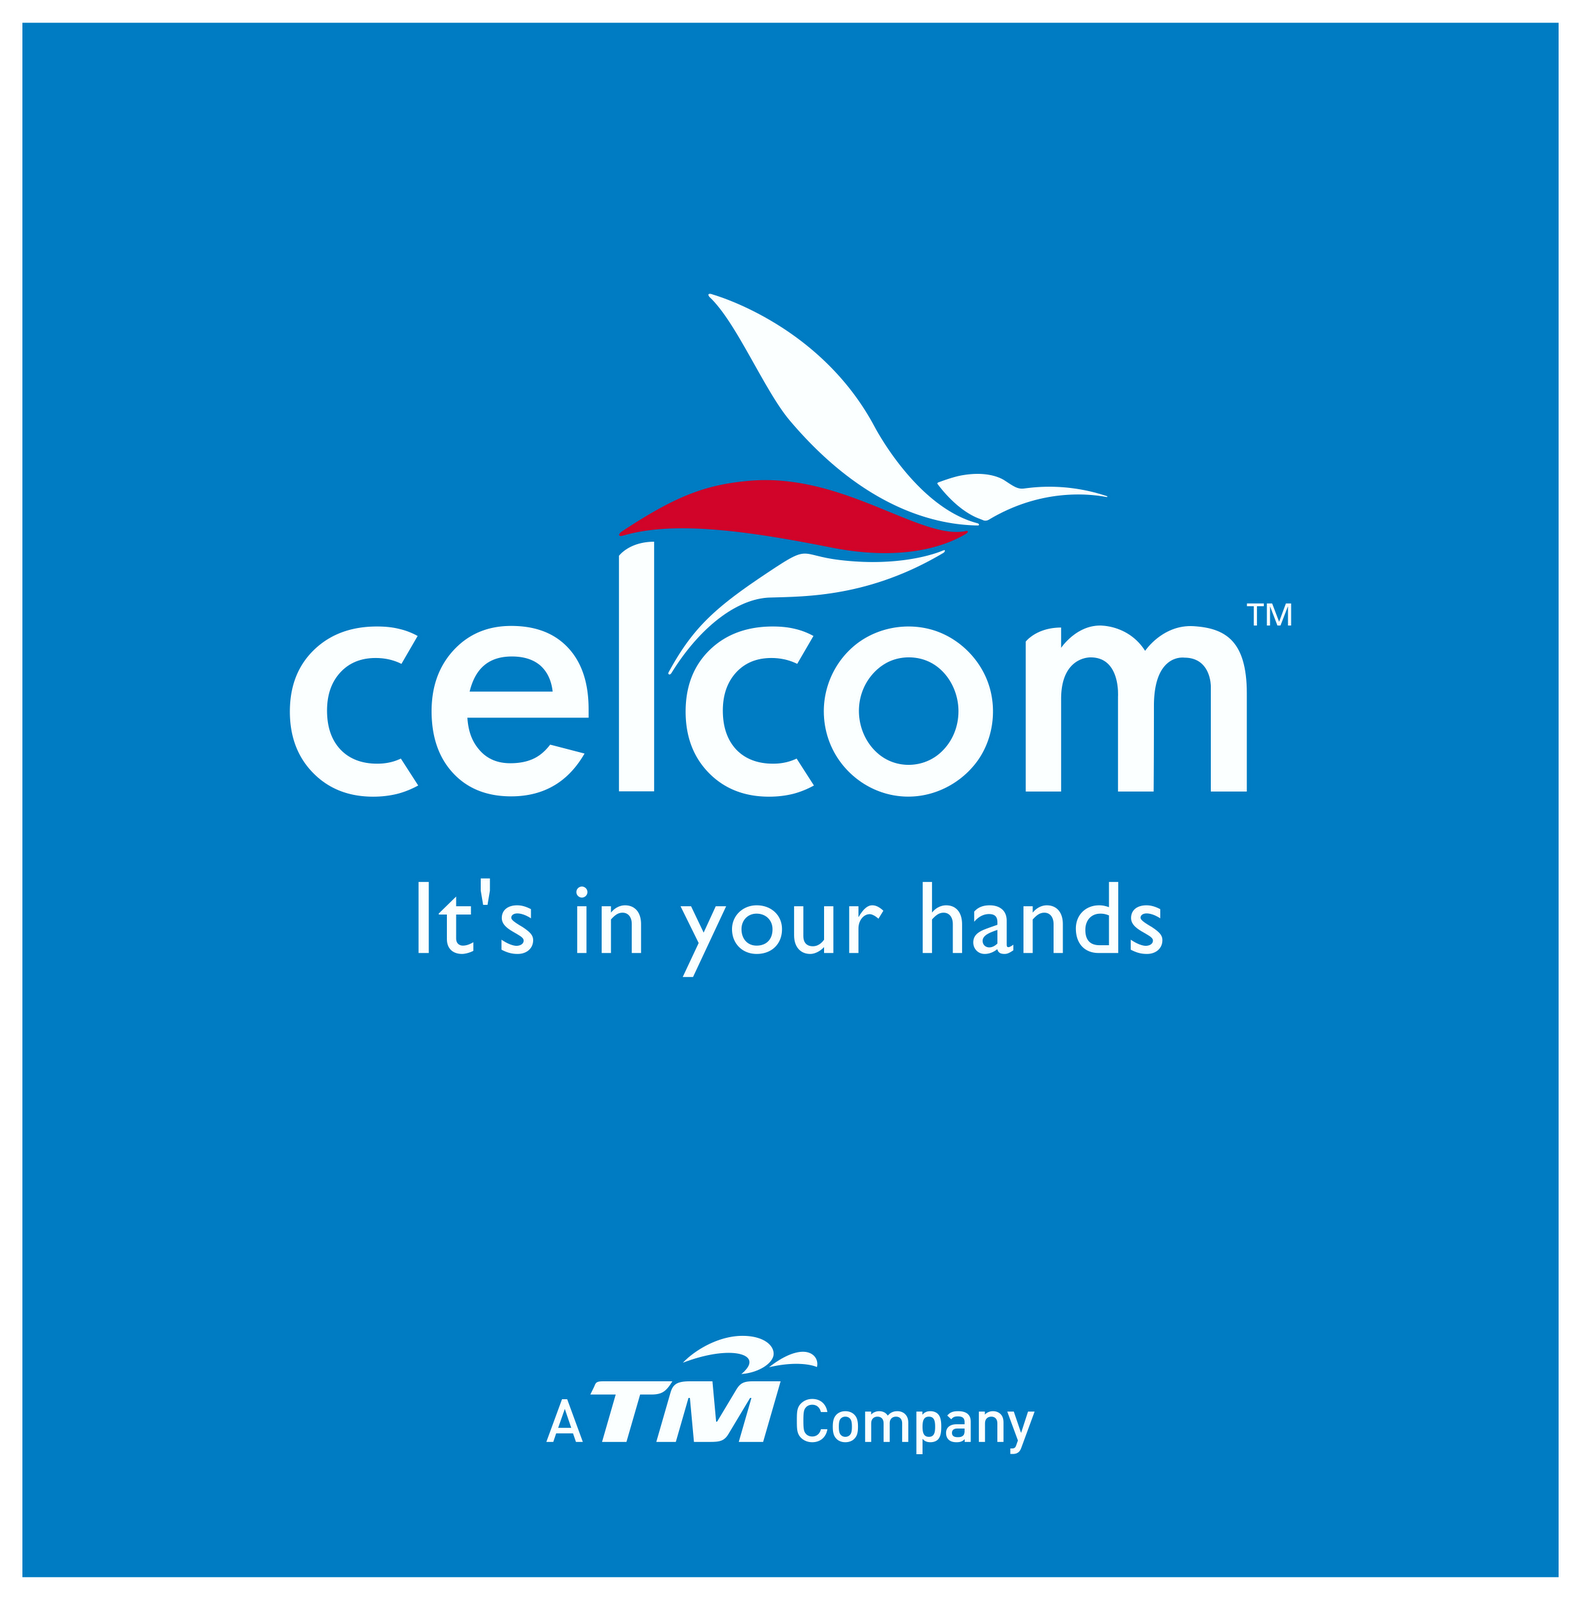 celcom axiata Celcom is a telecommunication firm that provides internet postpaid and prepaid services celcom was founded in 1988 celcom's headquarters are located at level 5, axiata towe, 9 jalan stesen sentral 5, kuala lumpur, , my 50470.